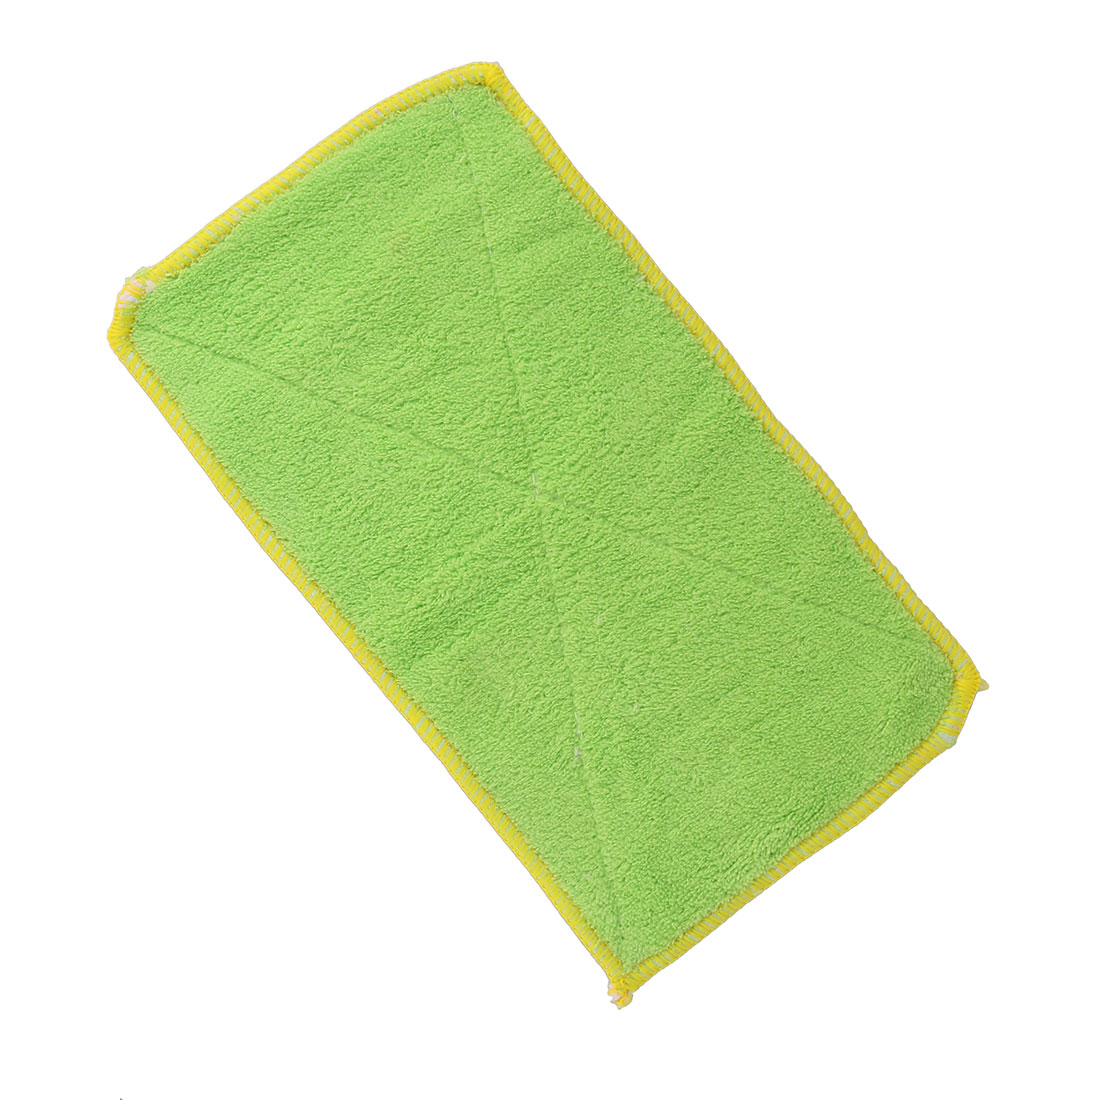 Kitchen Bamboo Fiber Bowl Pan Dish Wash Cloth Clean Towel Green 12cm